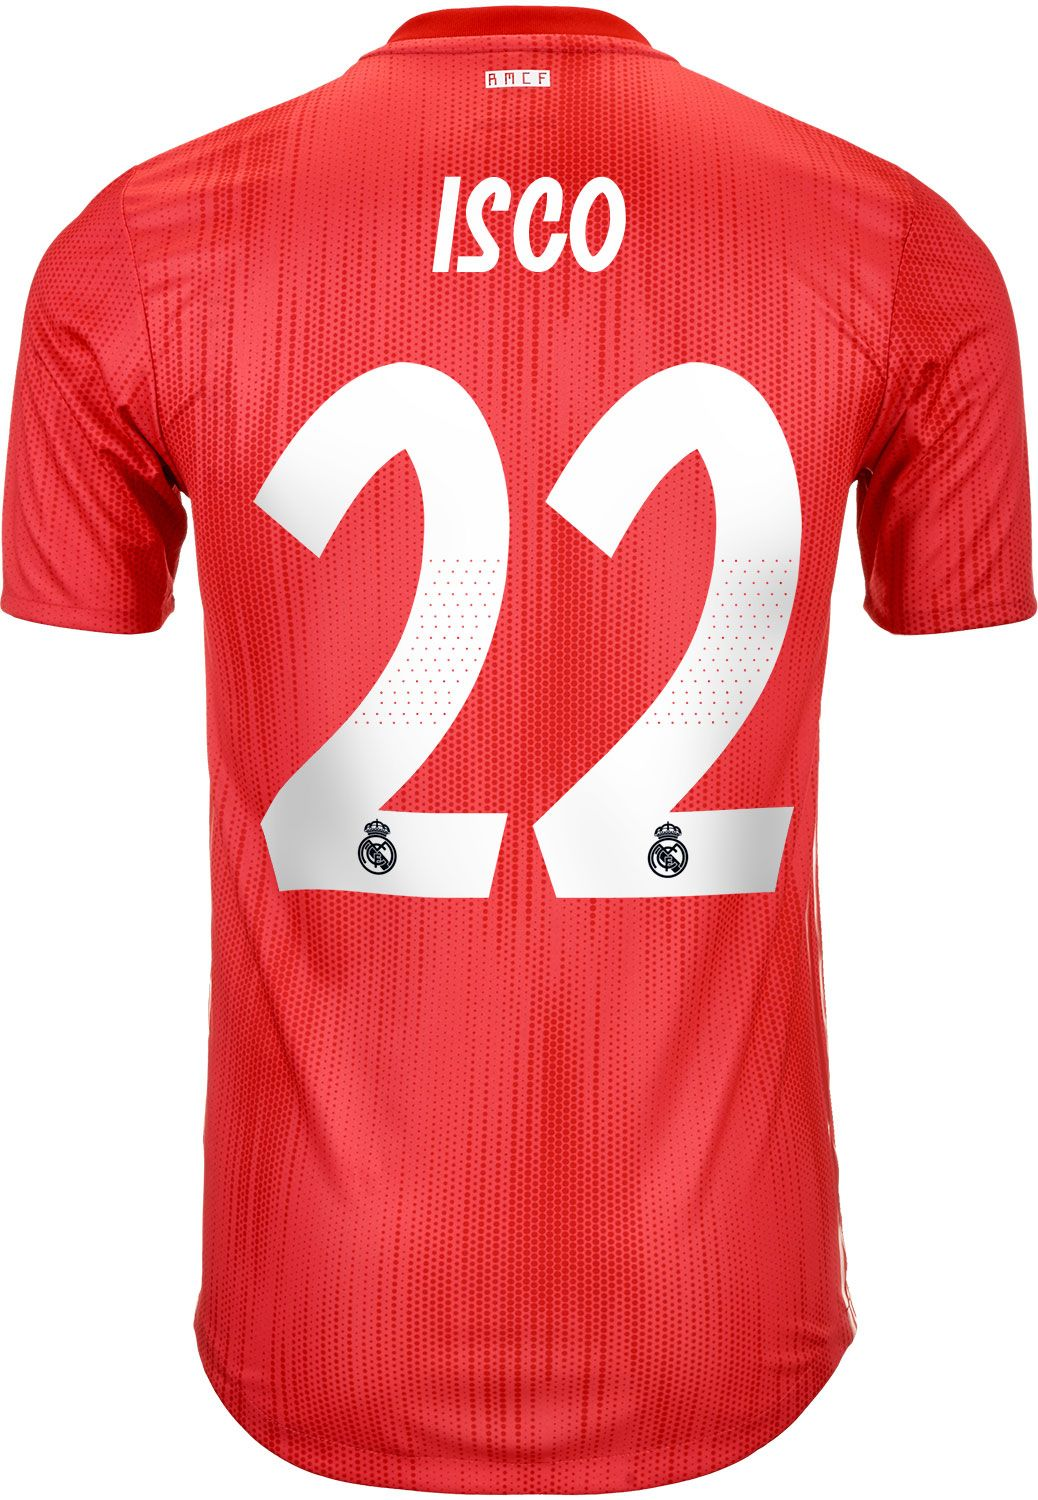 c509a8d8 2018/19 adidas Isco Real Madrid Authentic 3rd Jersey | Real Madrid ...